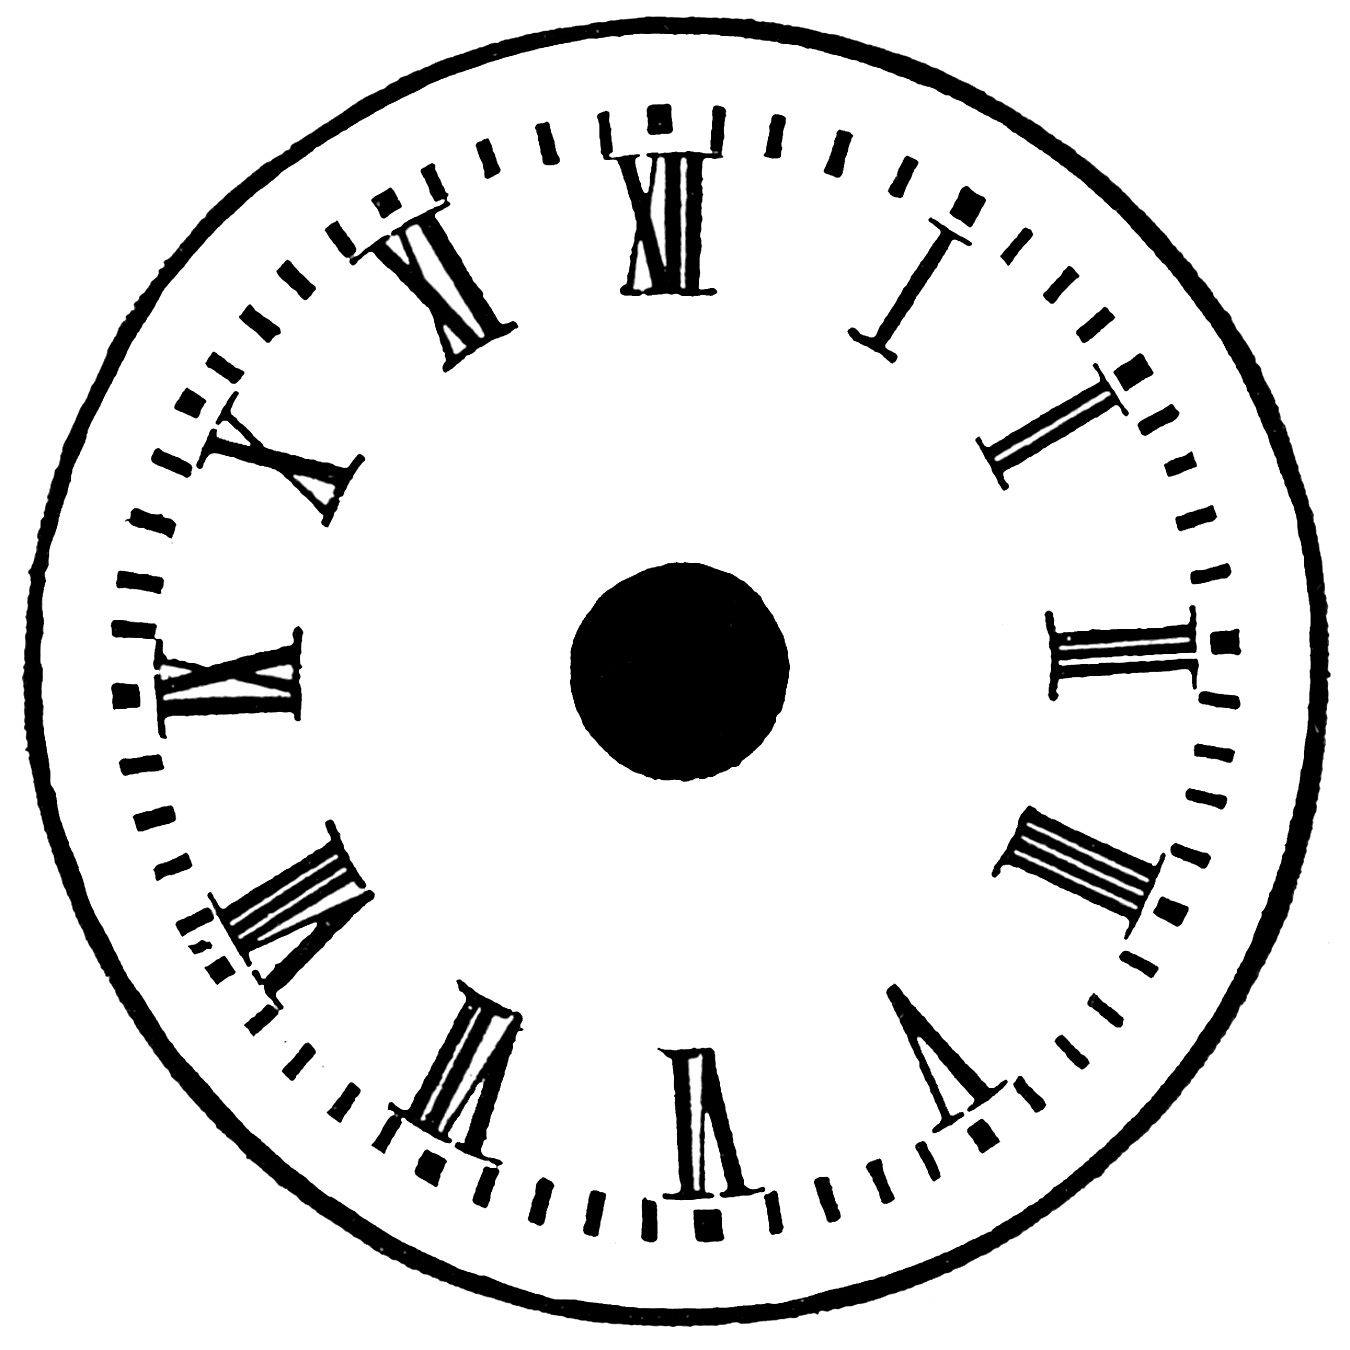 Printable Clock Face Withou Hands And Nubers